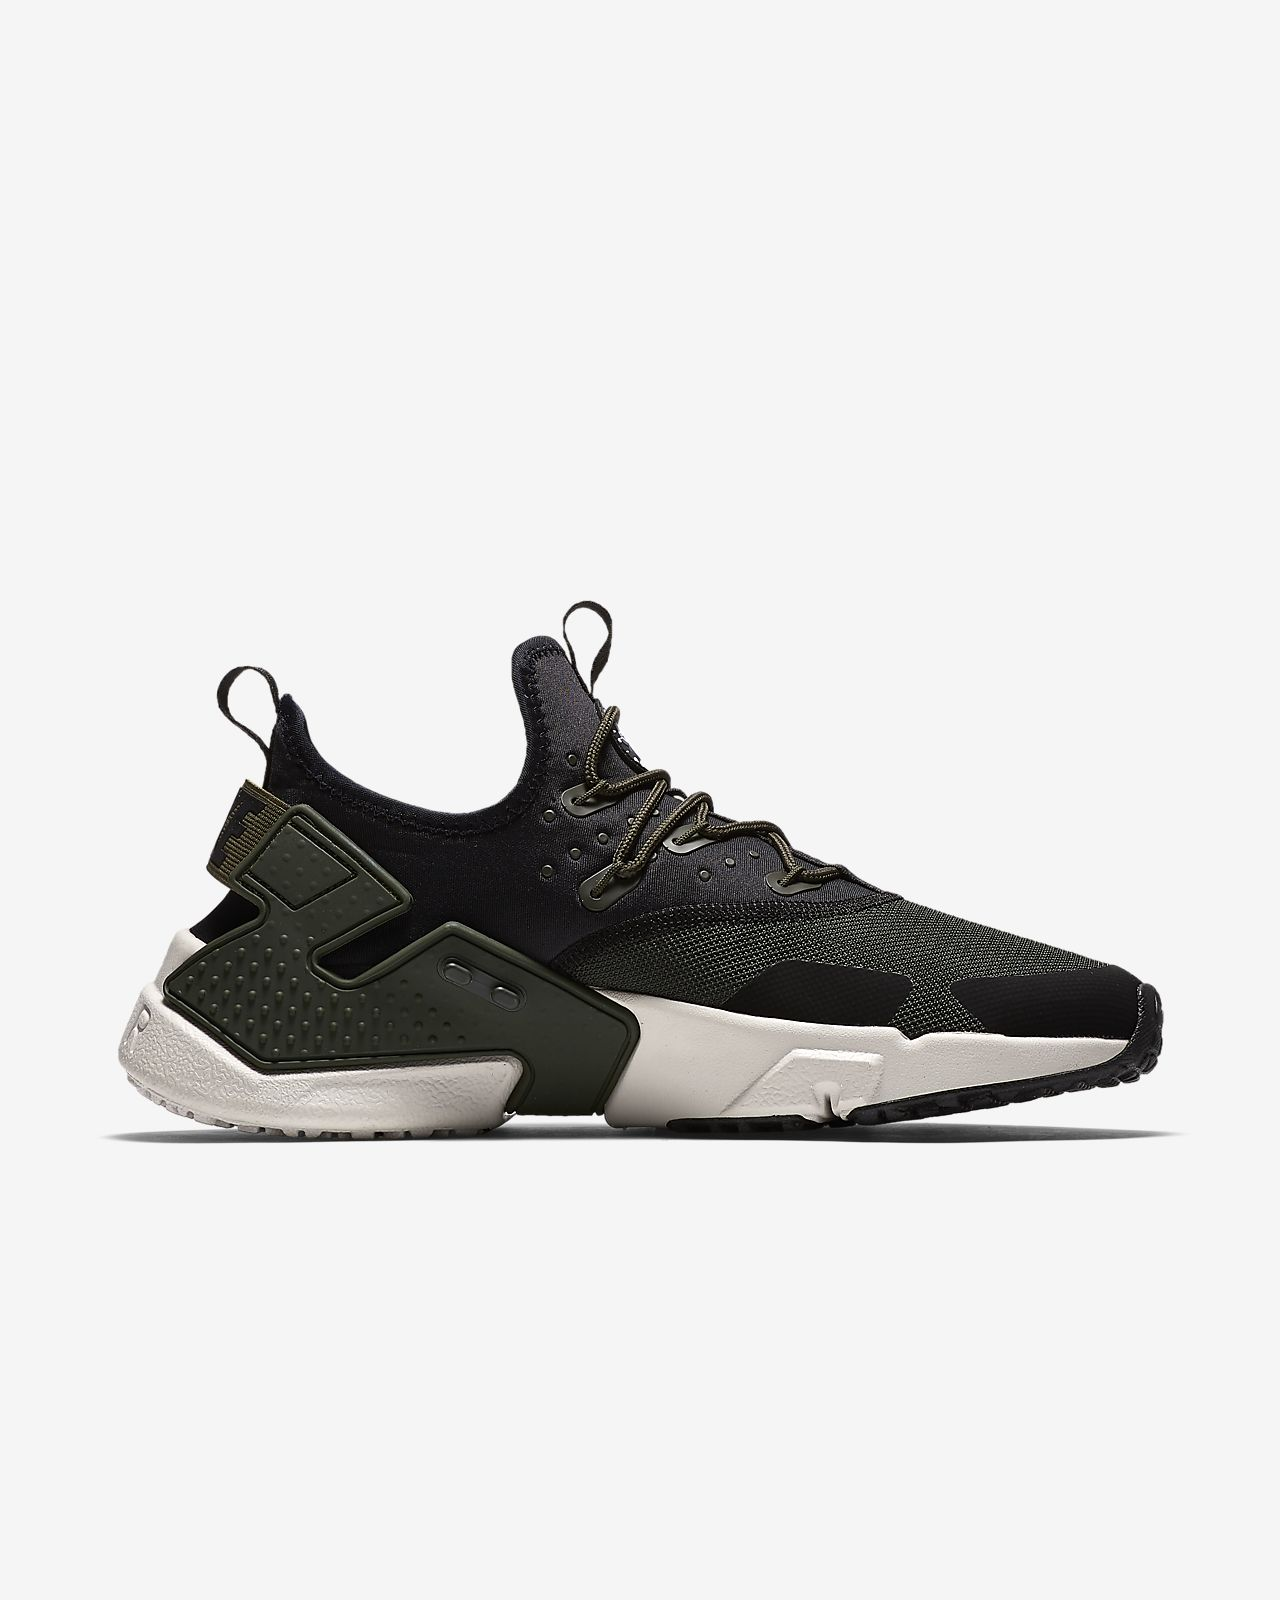 Nike Air Huarache - Chaussures - Bas-tops Et Baskets Nike